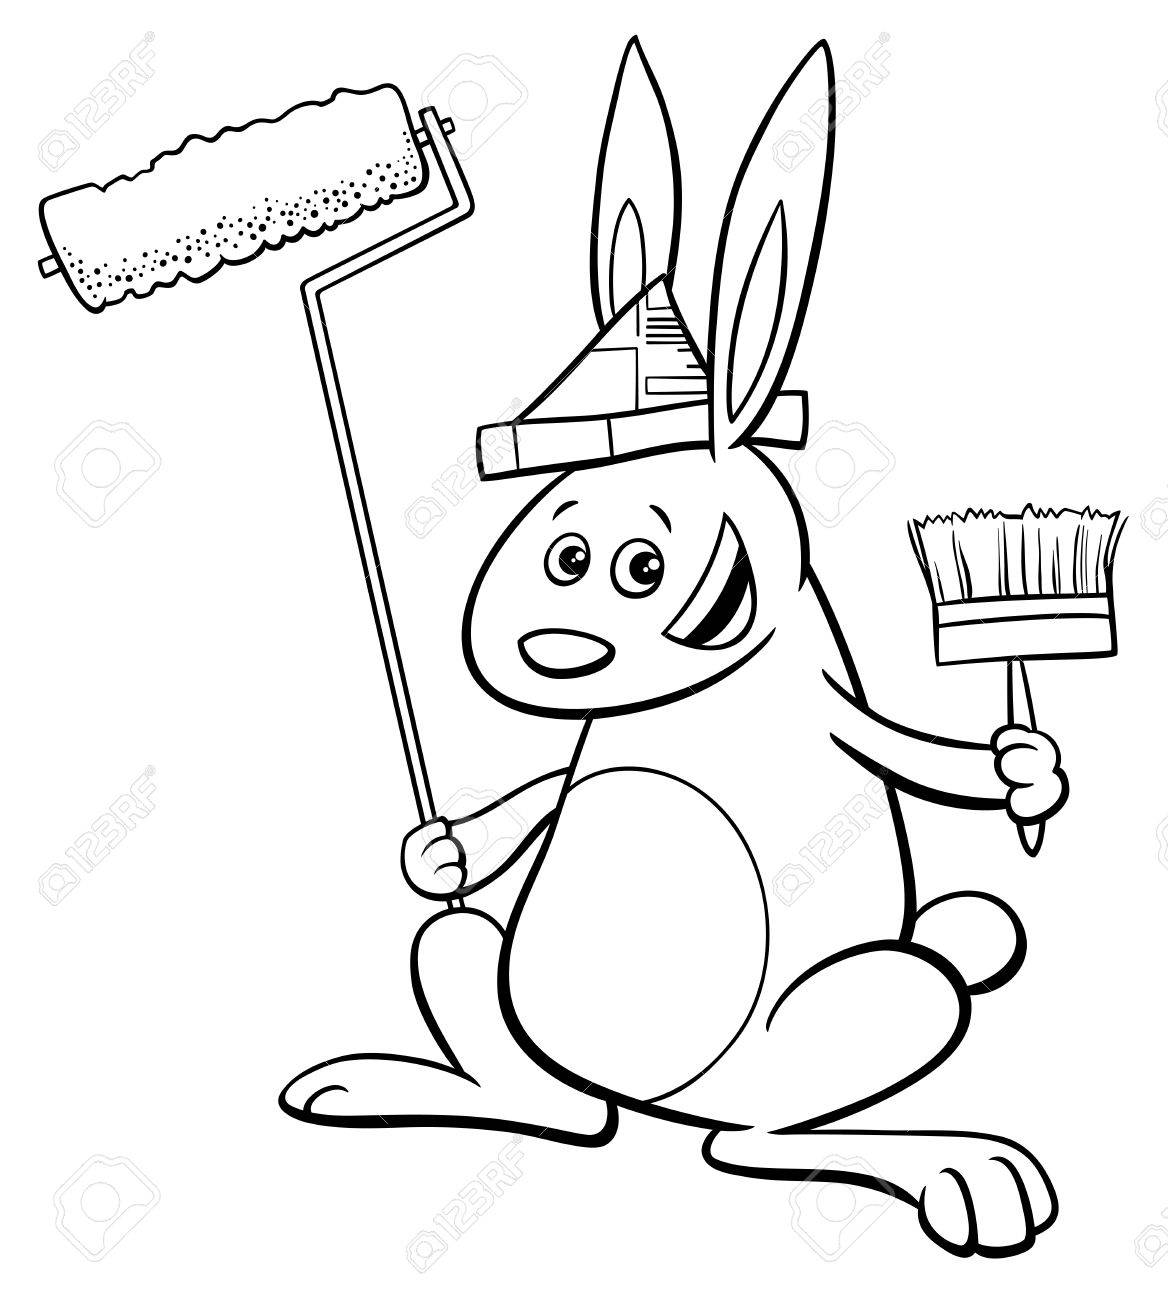 black and white cartoon illustration of rabbit painter fantasy animal character coloring book stock vector